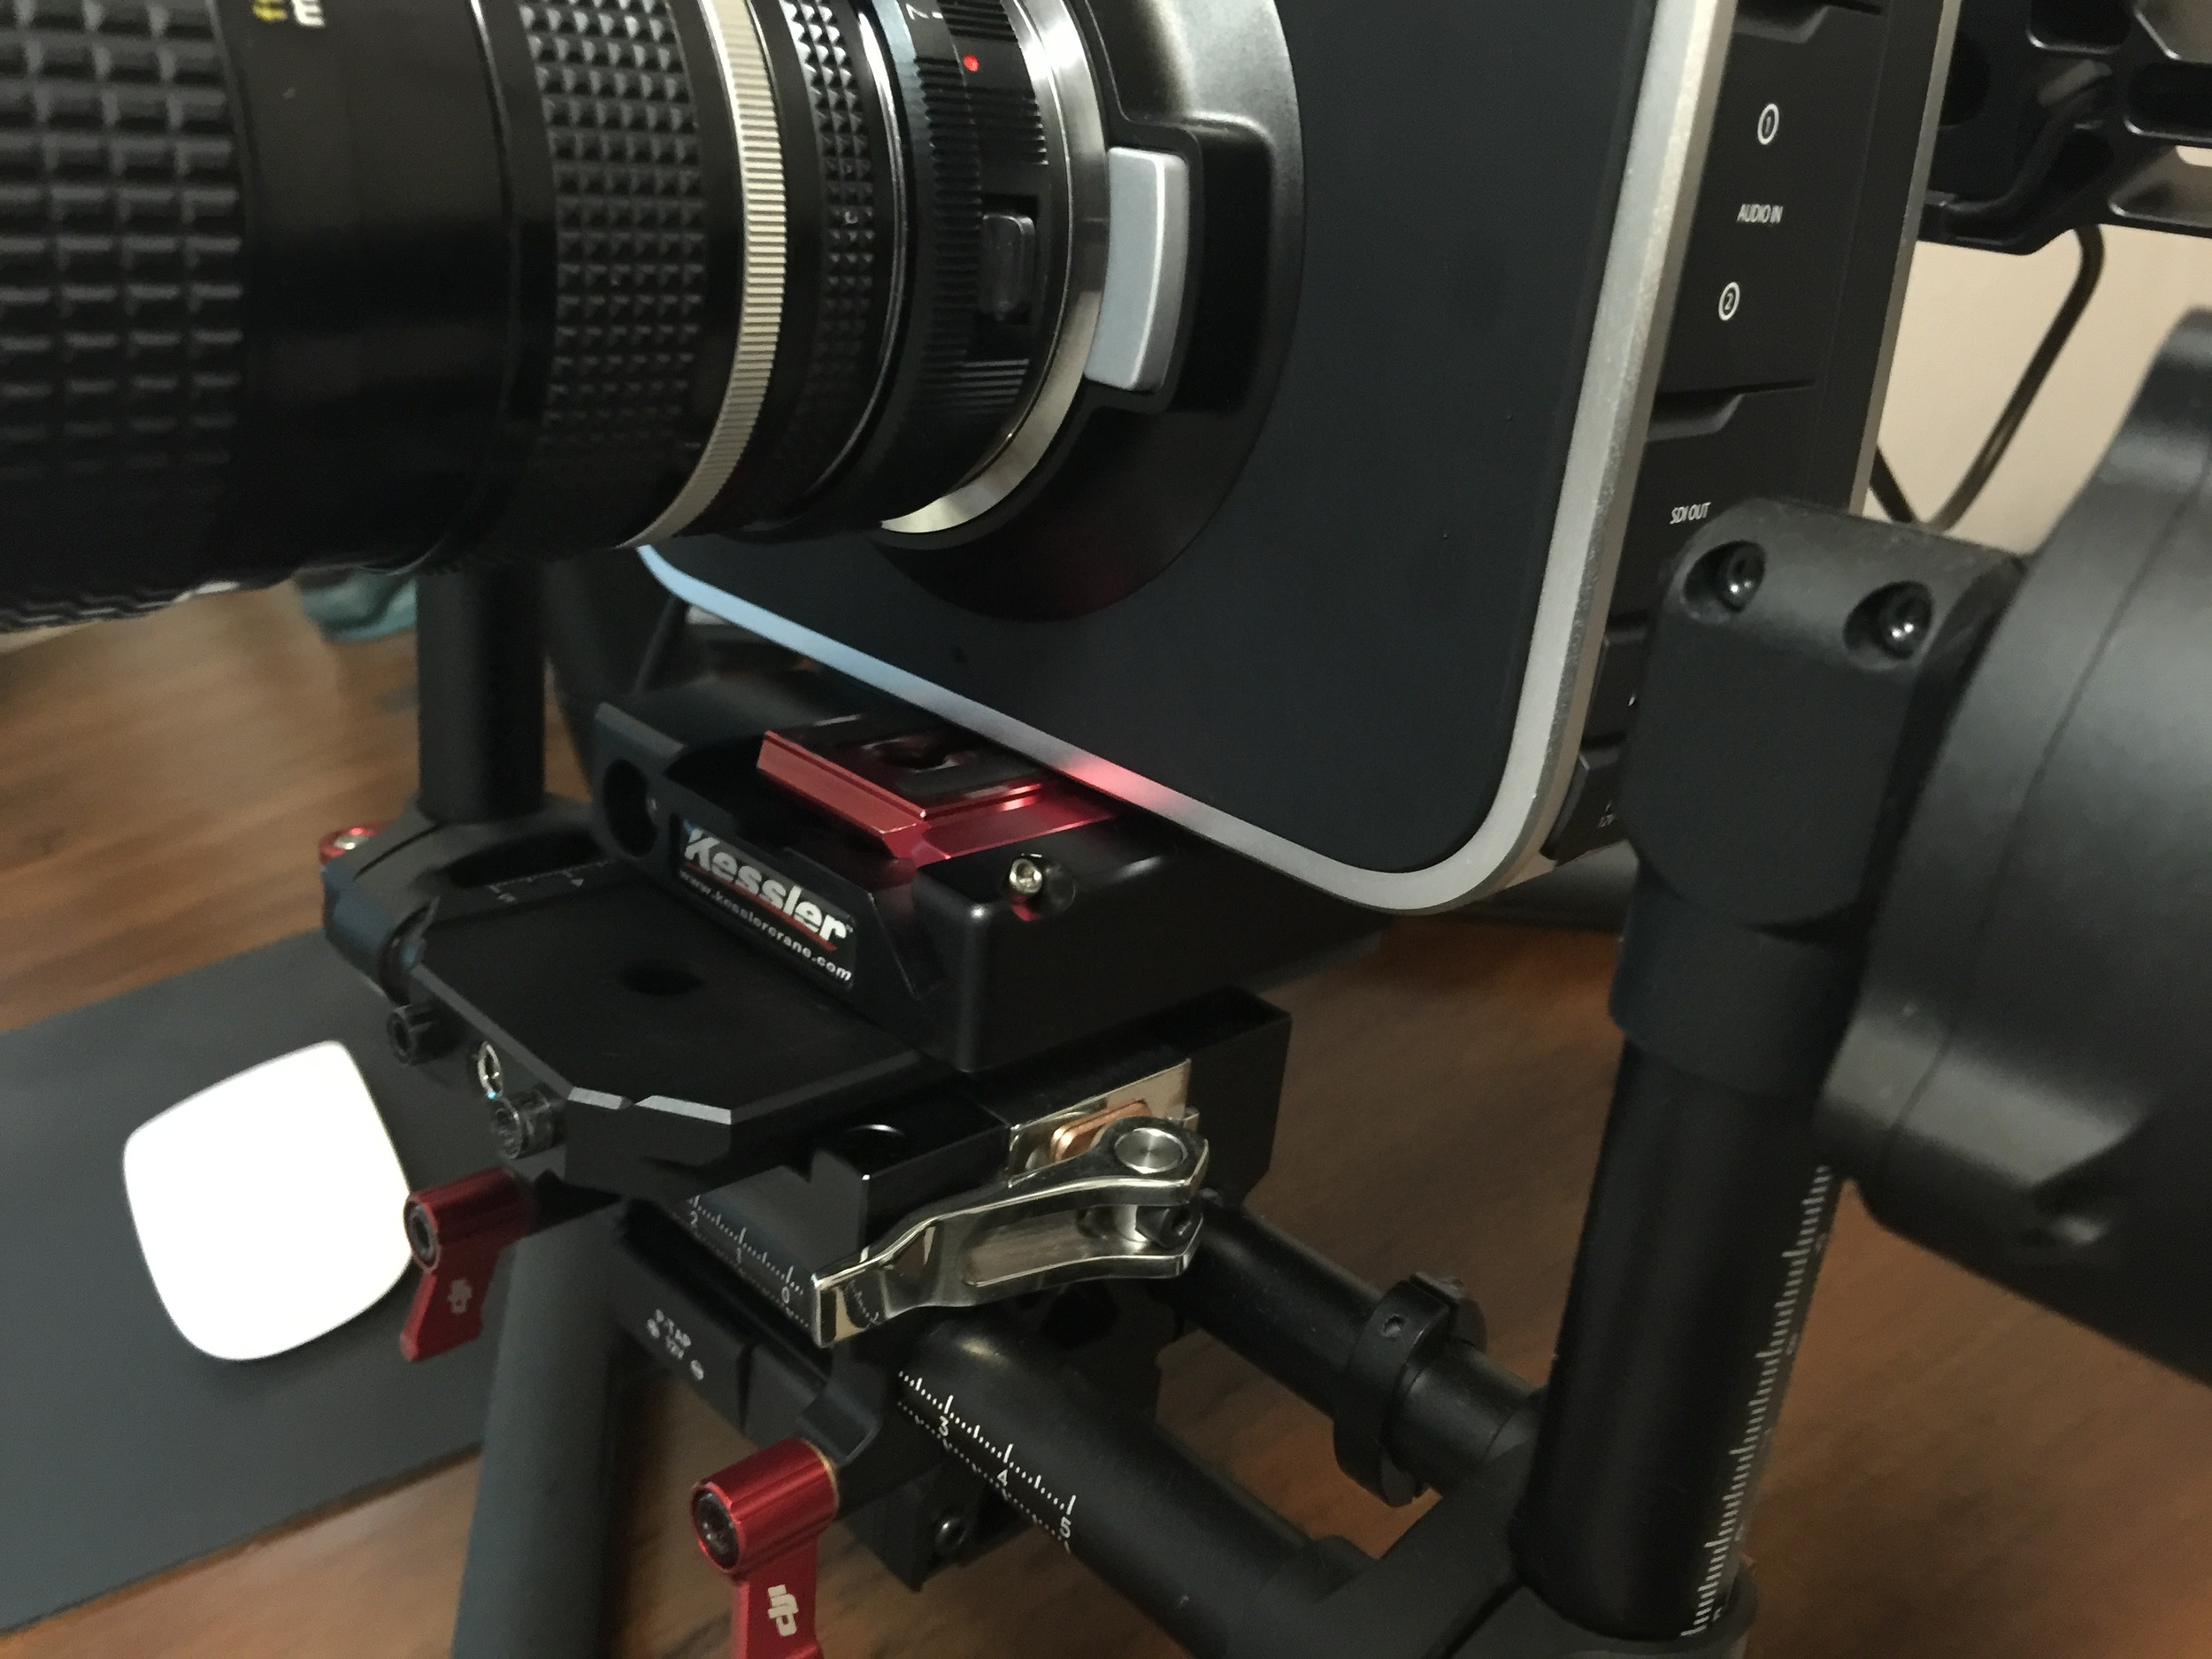 On a DJI Ronin Gimbal in about 10 seconds.